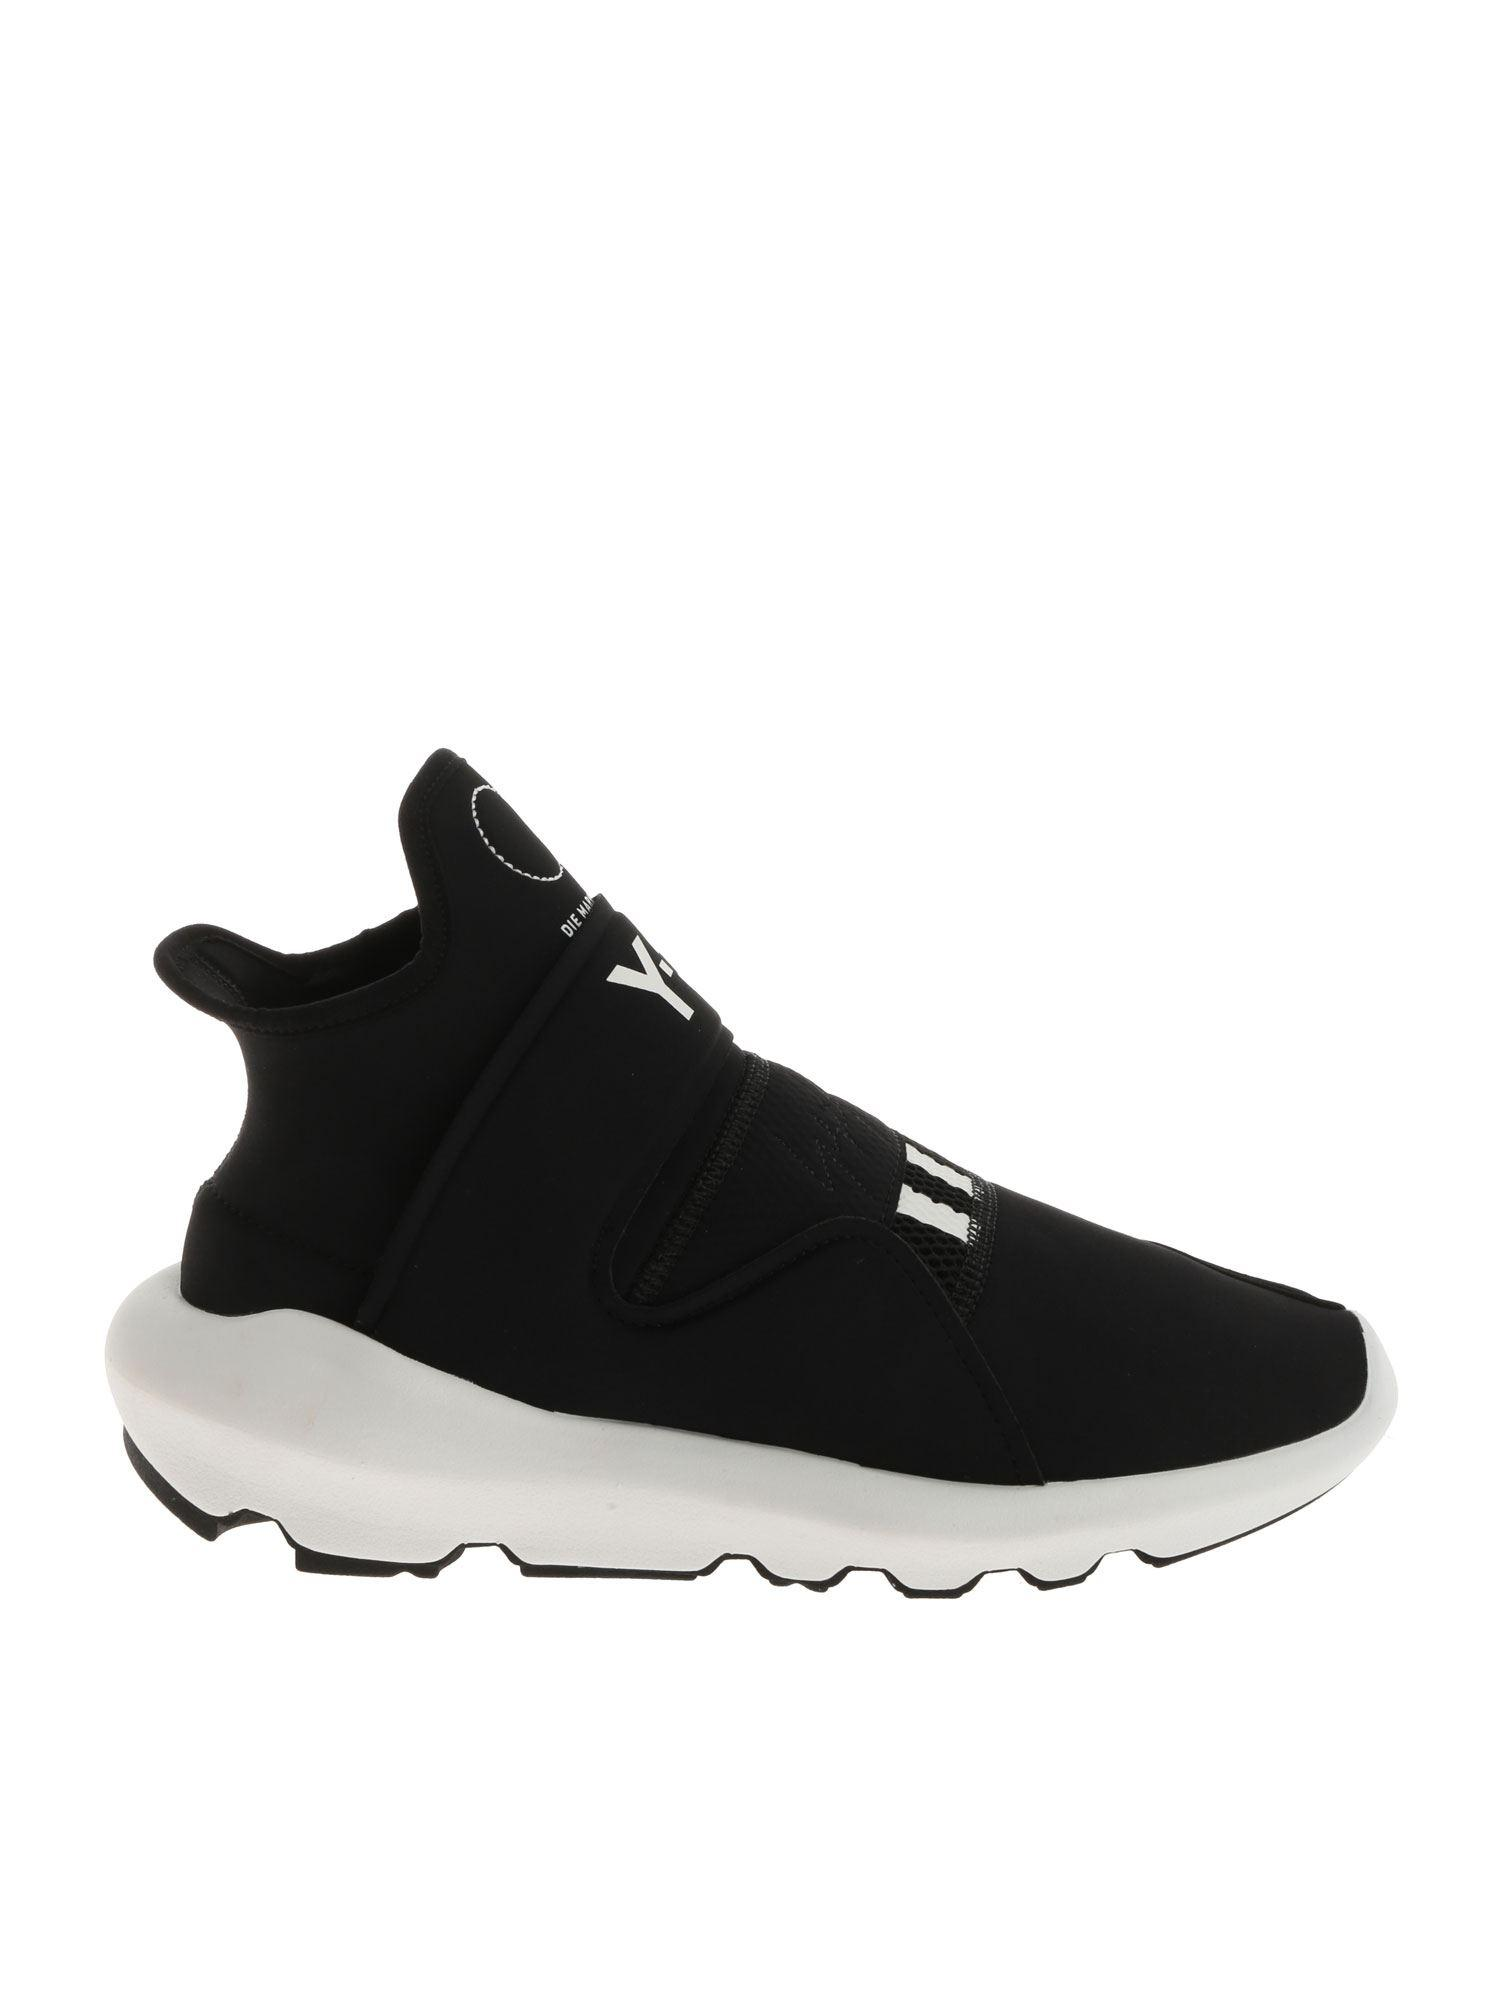 meet 39fd0 fedf2 Y-3. Women s Black Suberou Trainers With Logo Details